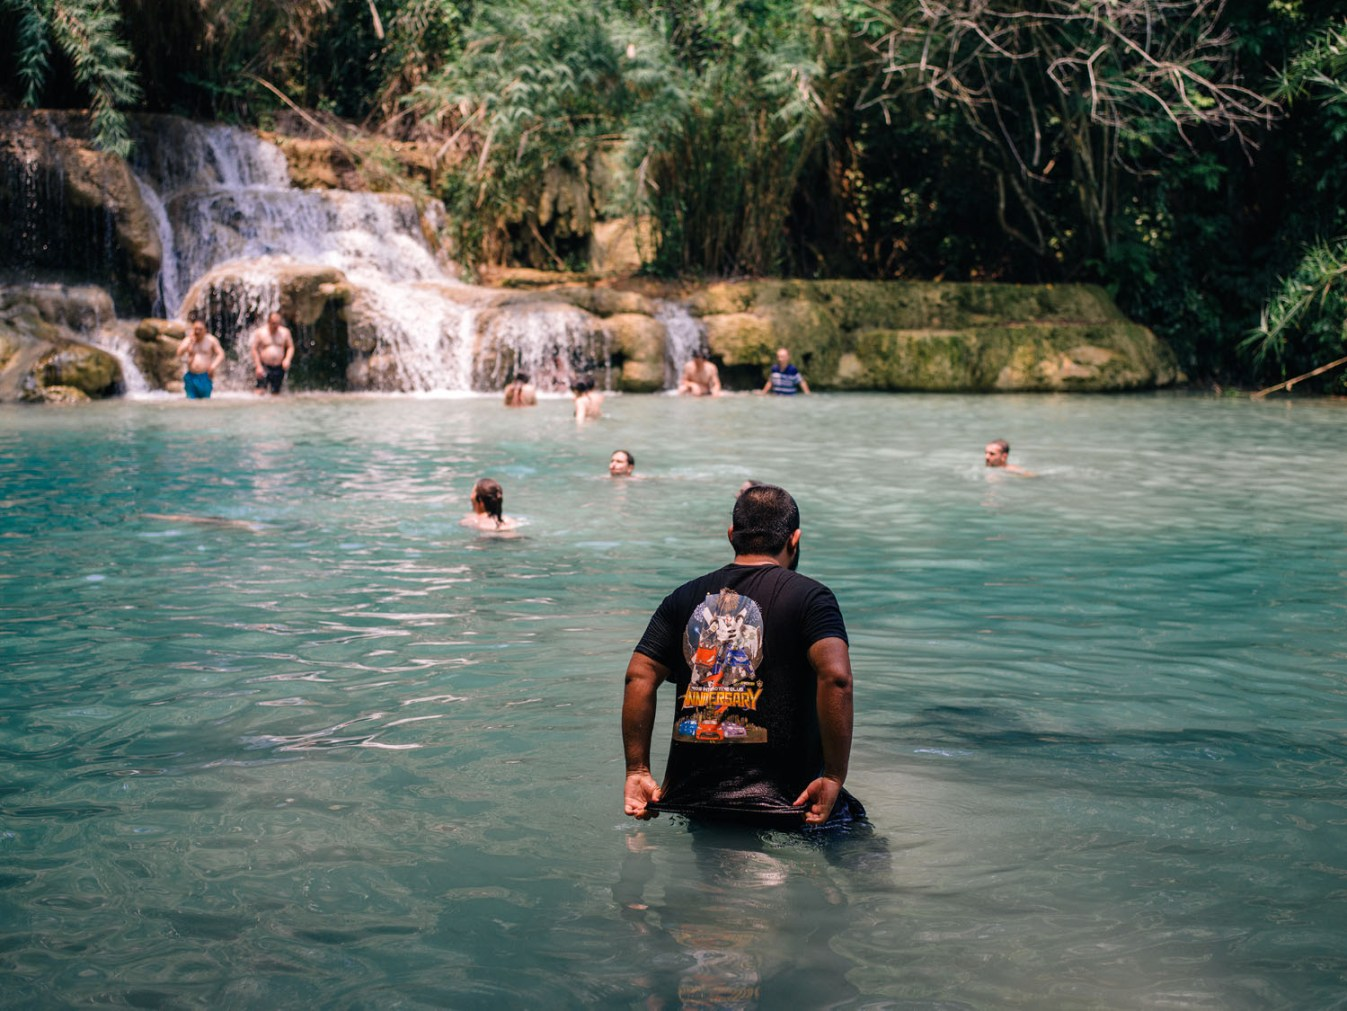 people in a pond by waterfall - How to Make Travel Photography Interesting Again